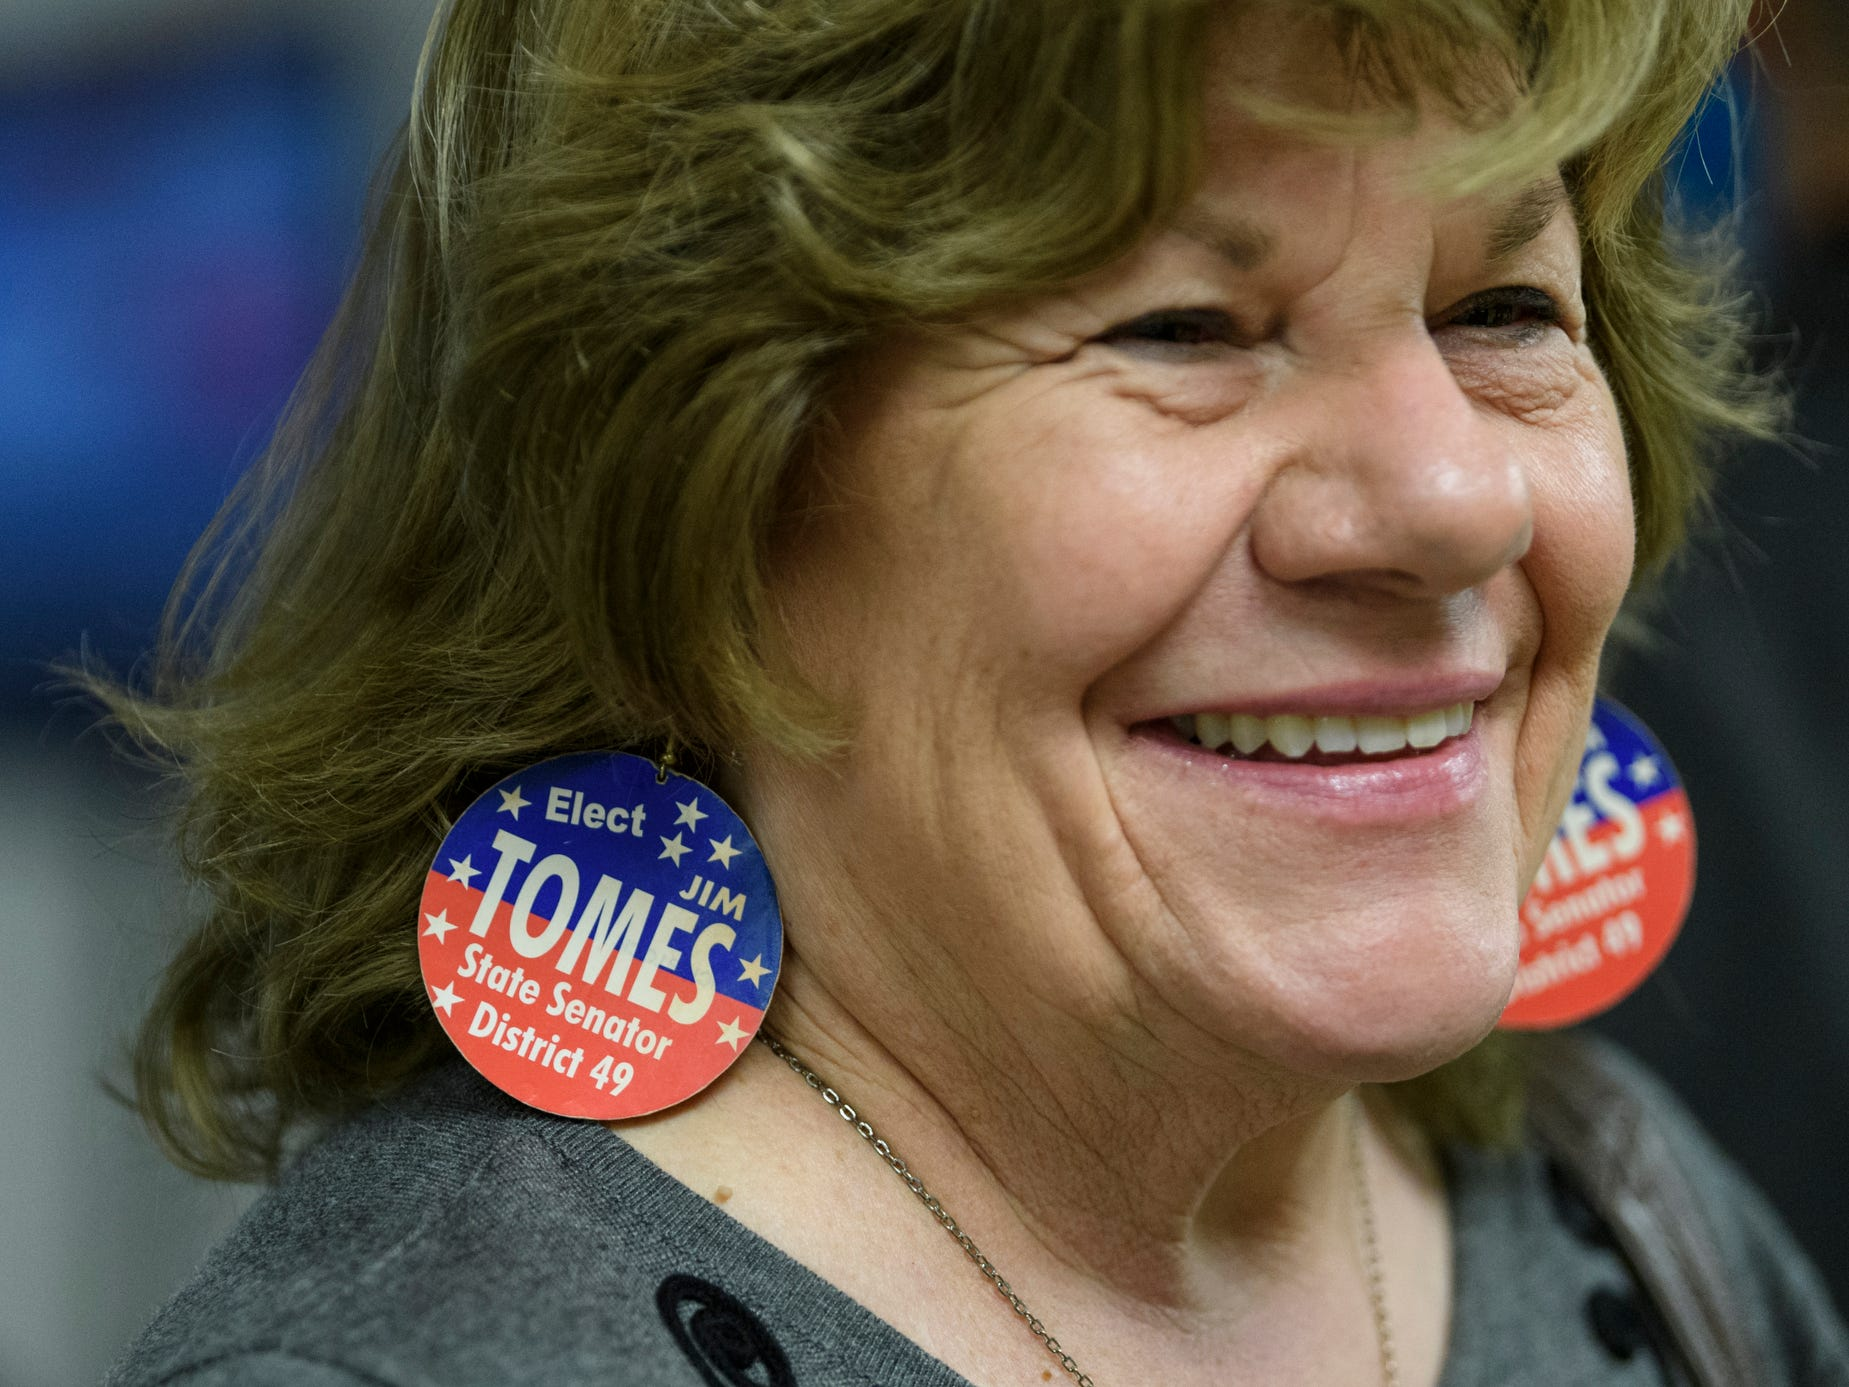 Margie Tomes wears earrings in support of her husband Jim Tomes' State Senate campaign while passing out stickers during the republican watch party at the C K Newsome Community Center in Evansville, Ind., Tuesday, Nov. 6, 2018. Jim defeated Democrat Edie Hardcastle in a landslide to keep his spot on the state senate.